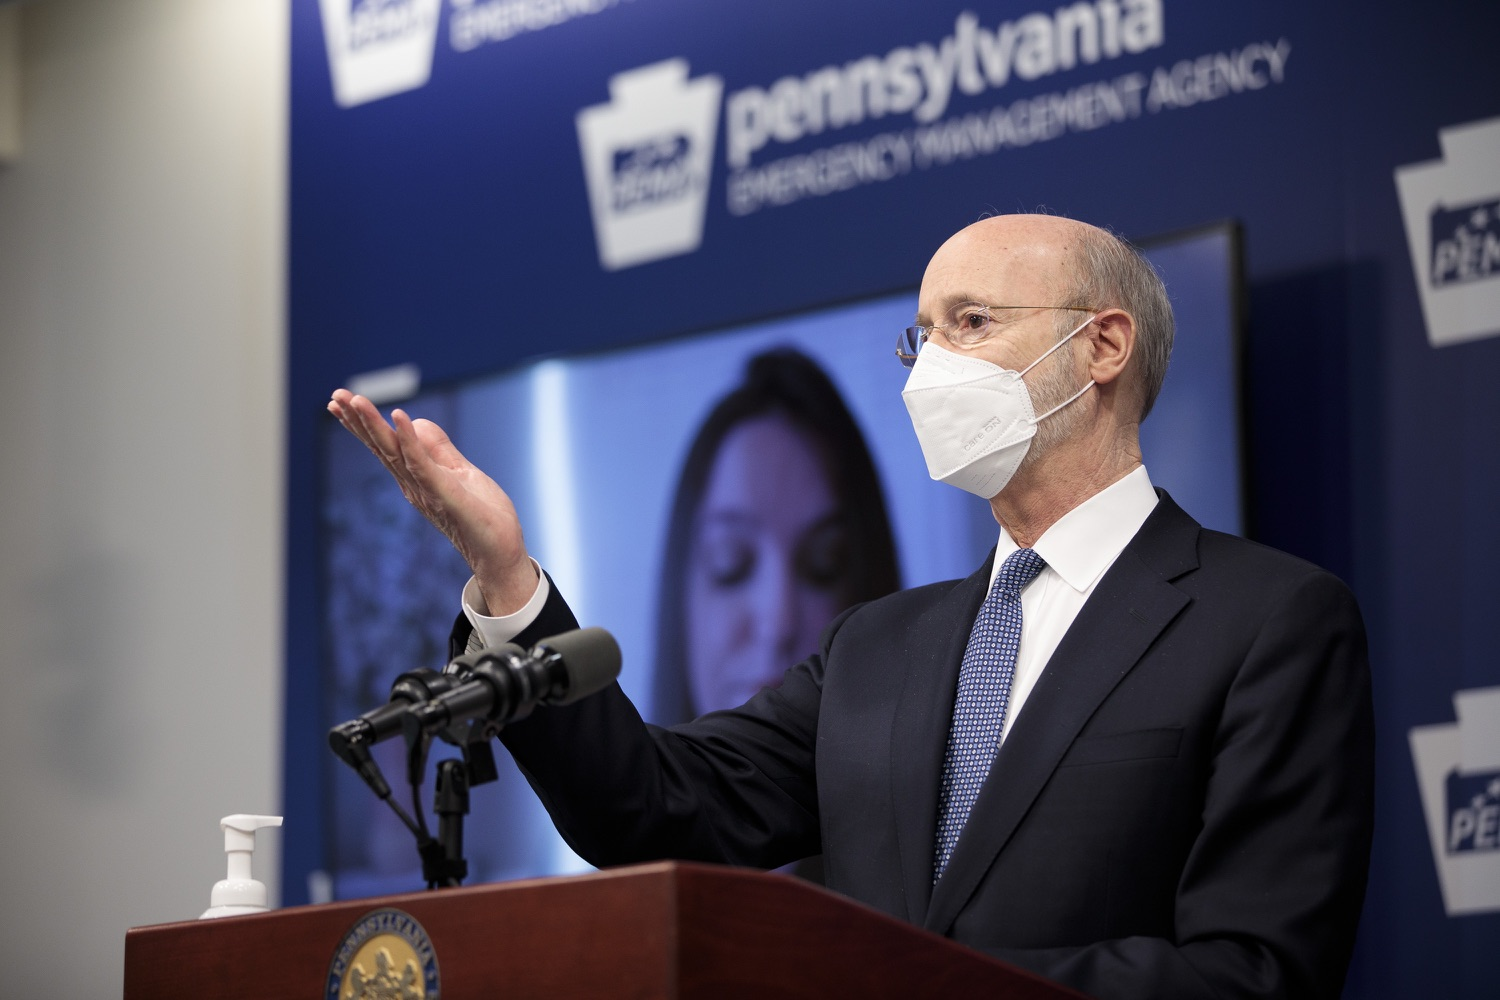 "<a href=""https://filesource.wostreaming.net/commonwealthofpa/photo/18551_gov_charterReform_dz_01.jpg"" target=""_blank"">⇣ Download Photo<br></a>Pennsylvania Governor Tom Wolf speaks to the press.  The urgent need to hold charter schools and cyber charter schools accountable has increased as enrollment and taxpayer costs have swelled during the COVID-19 pandemic. Governor Tom Wolf today unveiled a common sense and fair bipartisan plan that protects students, parents and taxpayers. The plan holds low-performing charter schools accountable to improve the quality of education, protects taxpayers by reining in skyrocketing charter school costs and increases the transparency of for-profit companies that run many charter schools. Harrisburg, PA  February 26, 2021"